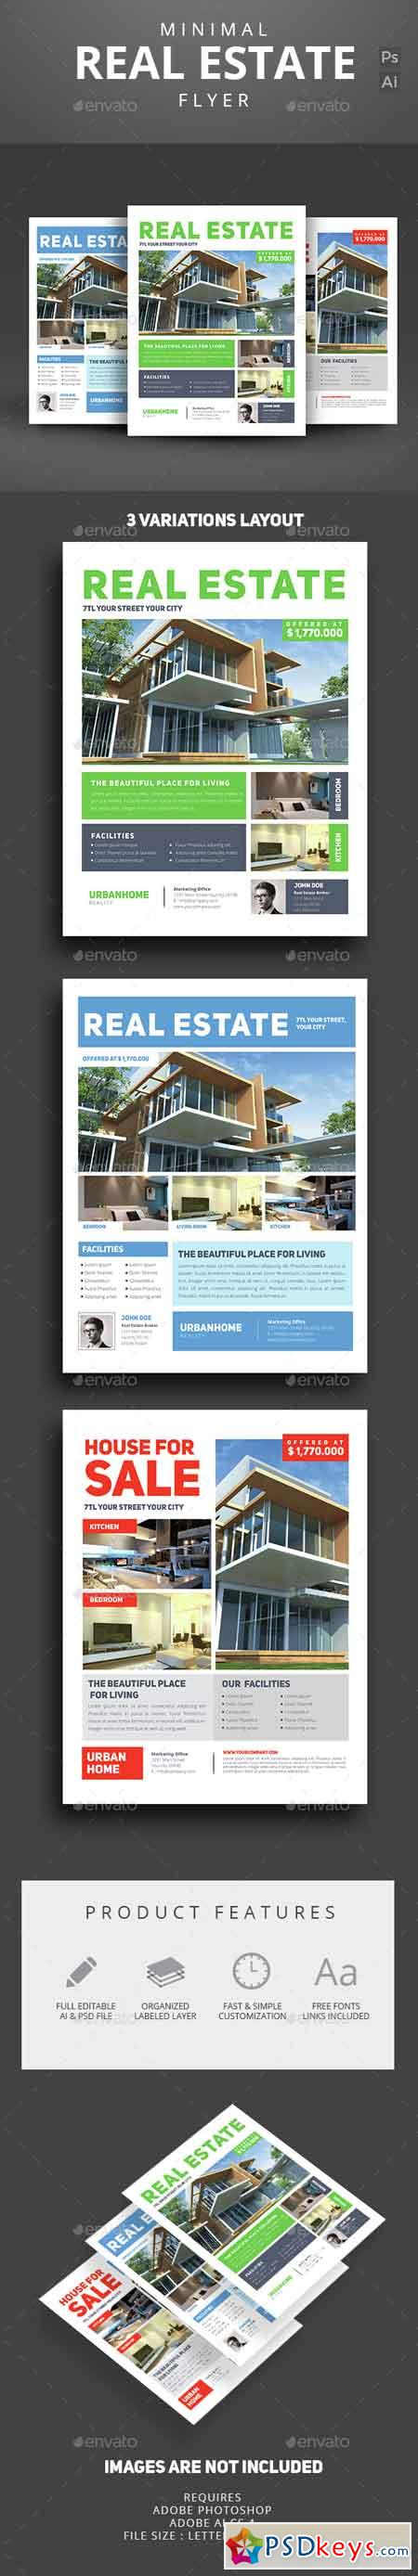 Minimal Real Estate Flyer 14614035